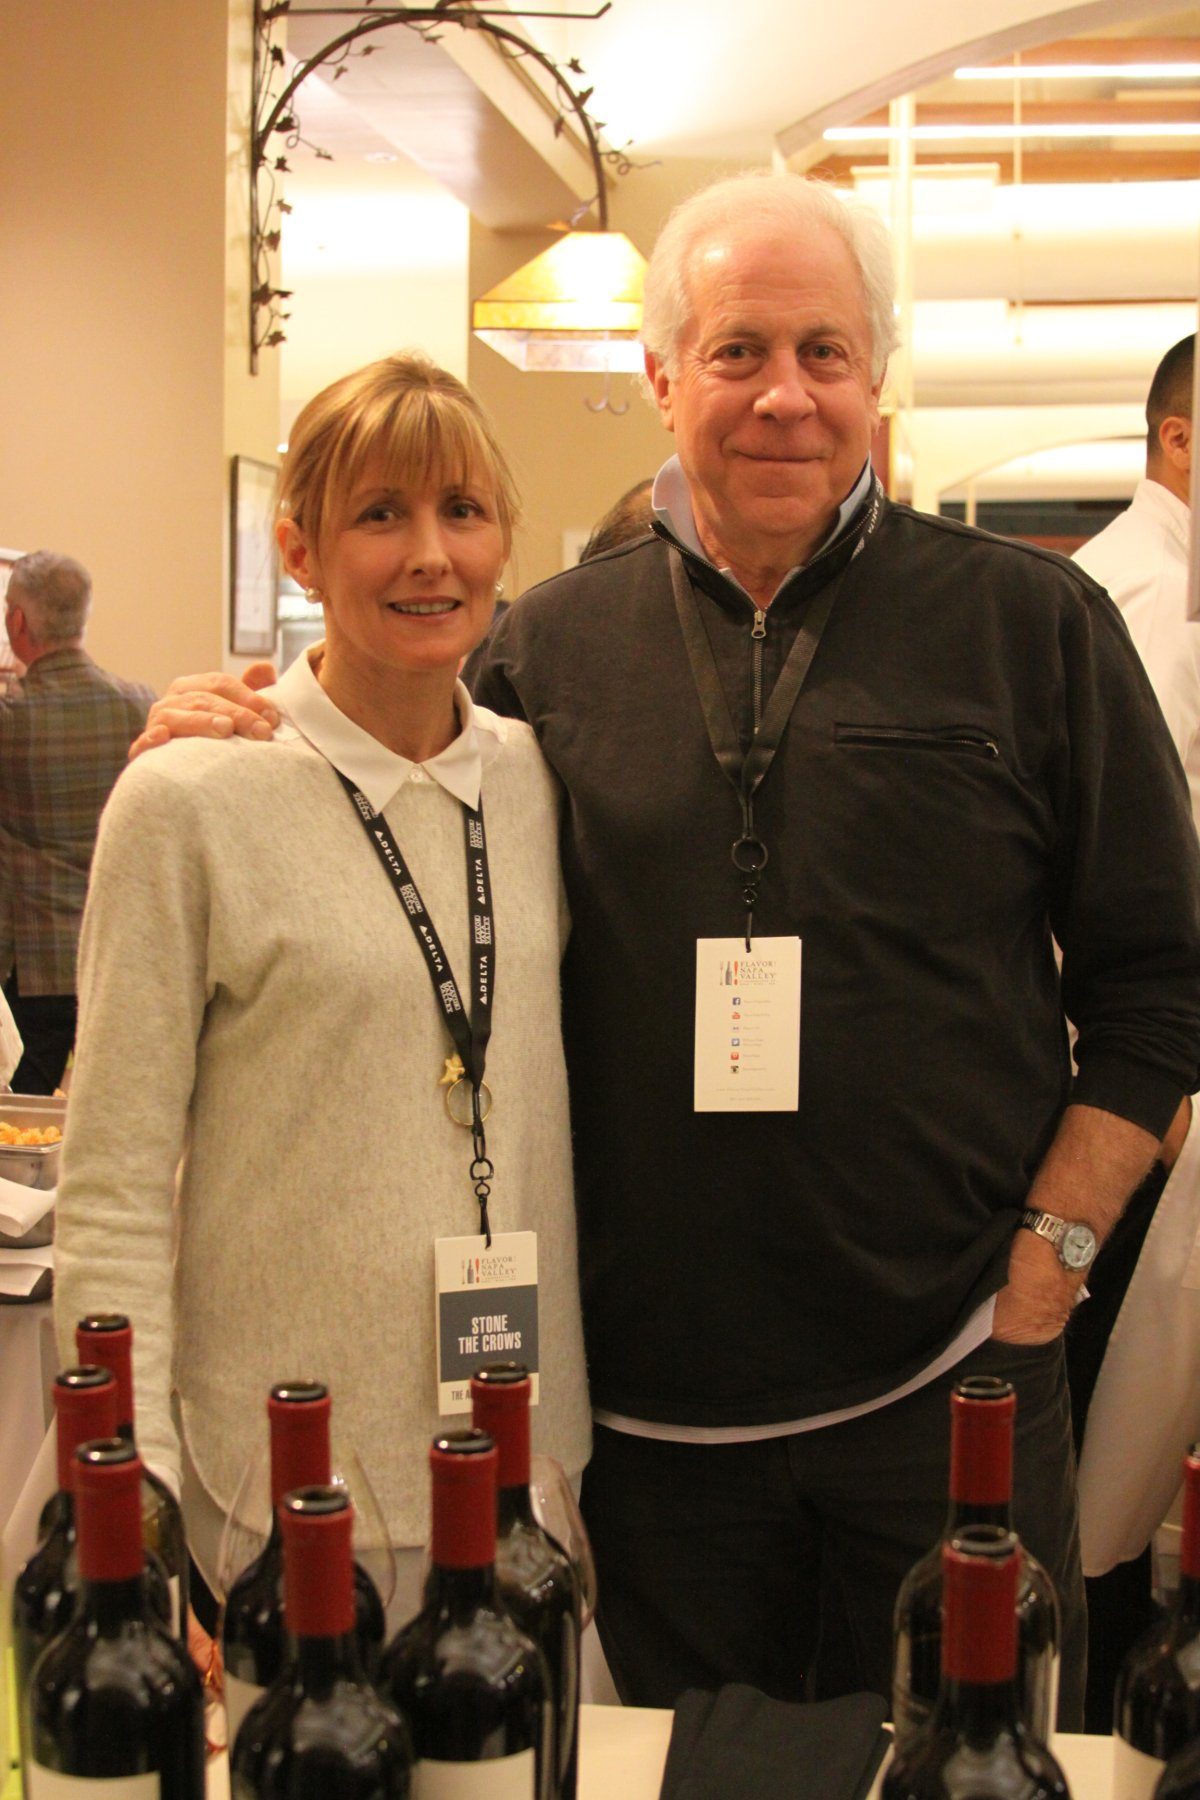 Appellation Trail Tasting Flavor Napa Valley 2013 The